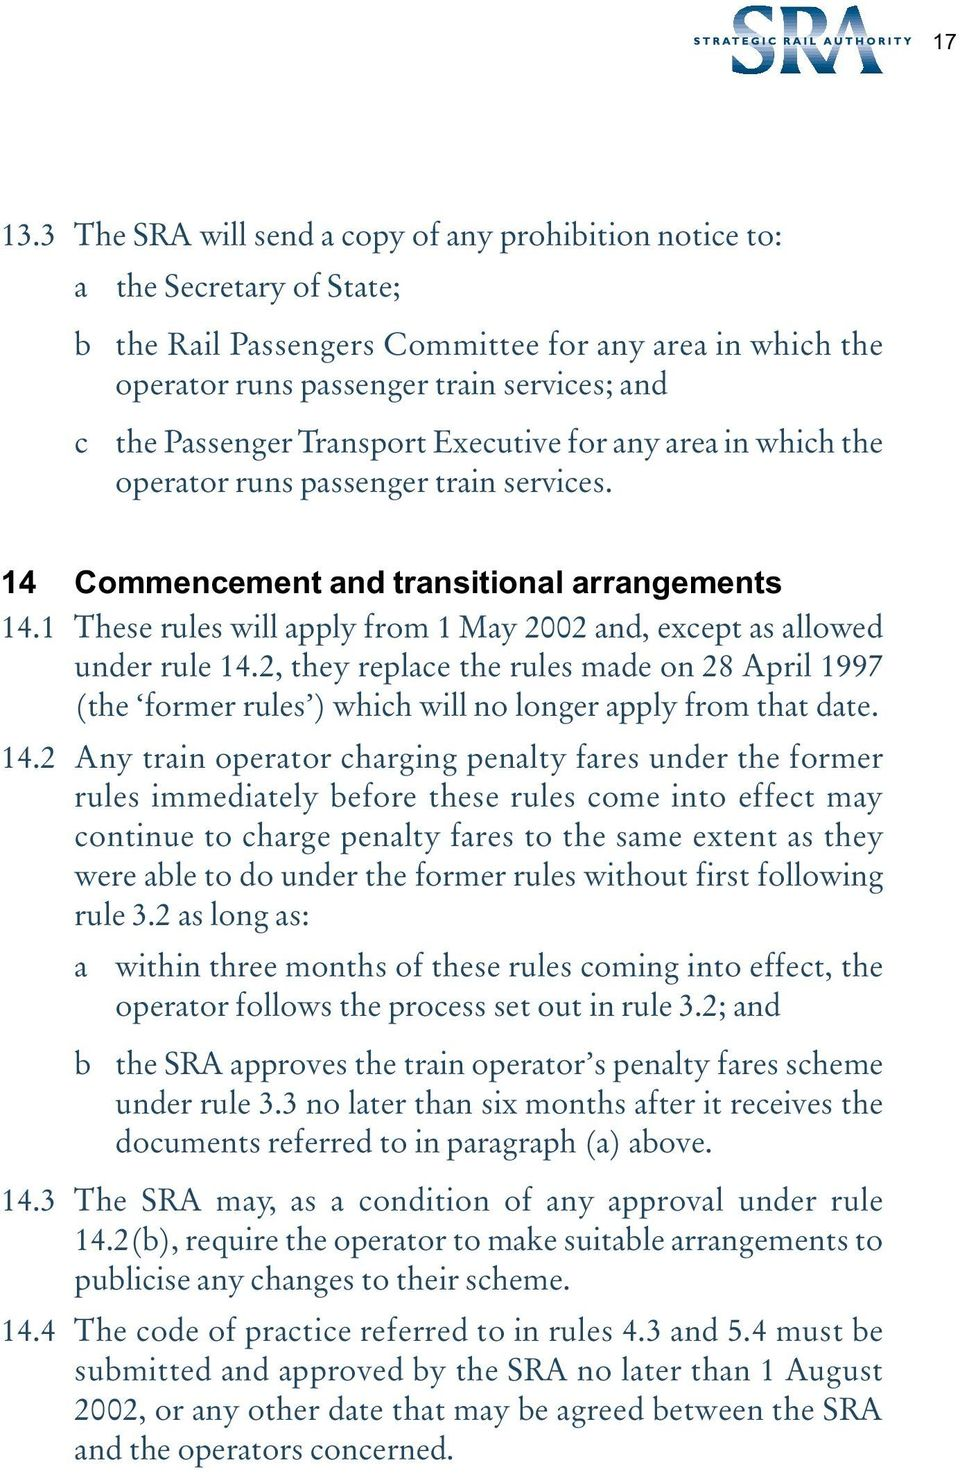 Passenger Transport Executive for any area in which the operator runs passenger train services. 14 Commencement and transitional arrangements 14.